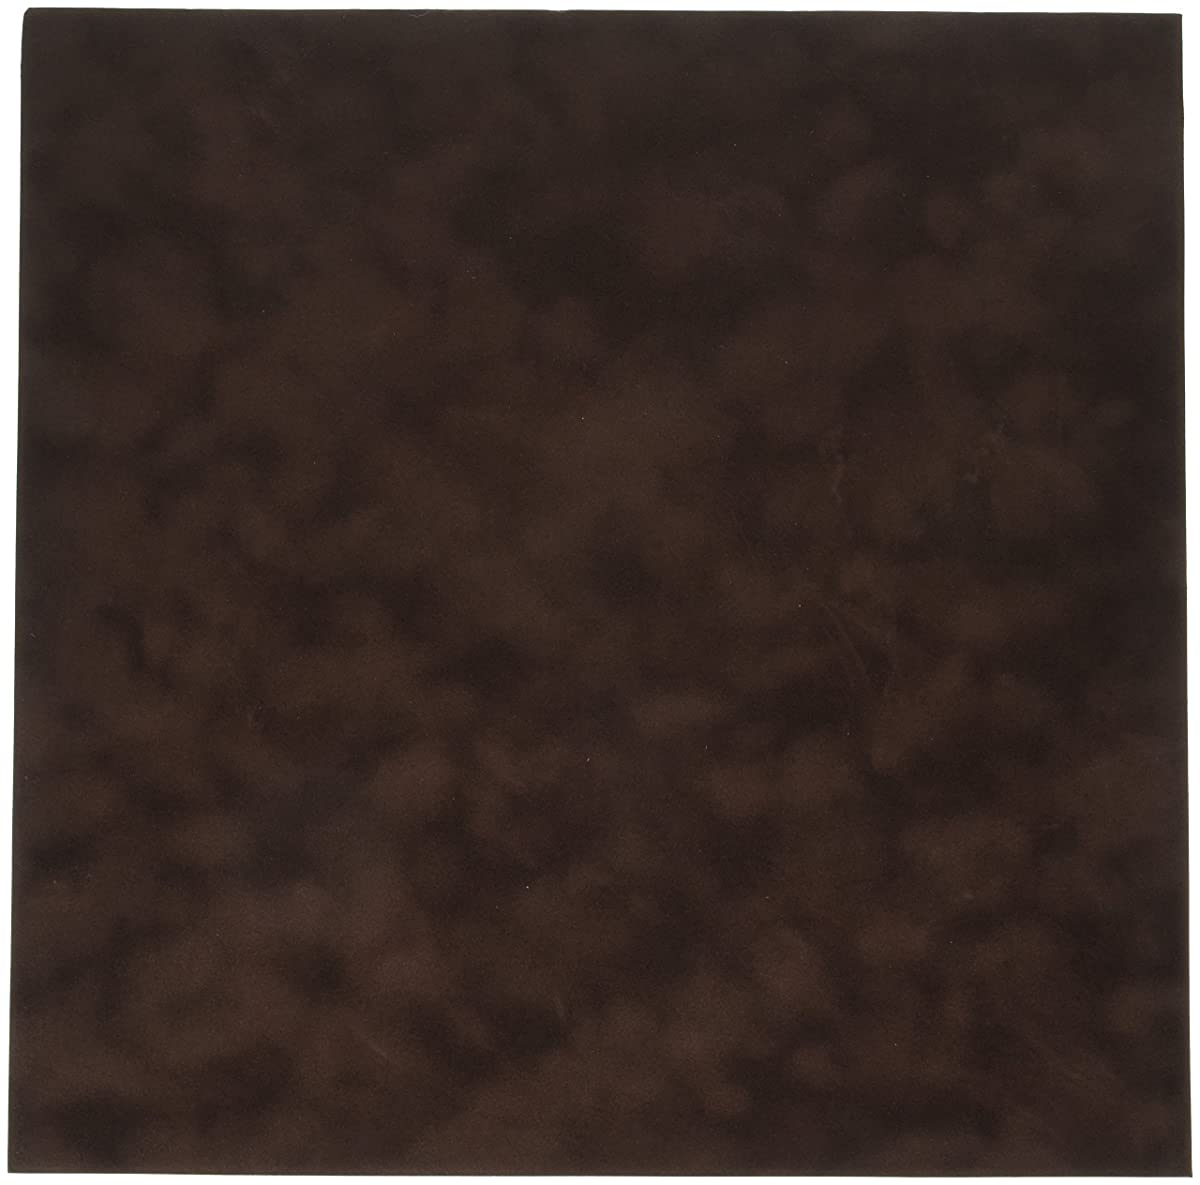 Sew Easy Industries 12-Sheet Velvet Paper, 12 by 12-Inch, Chocolate